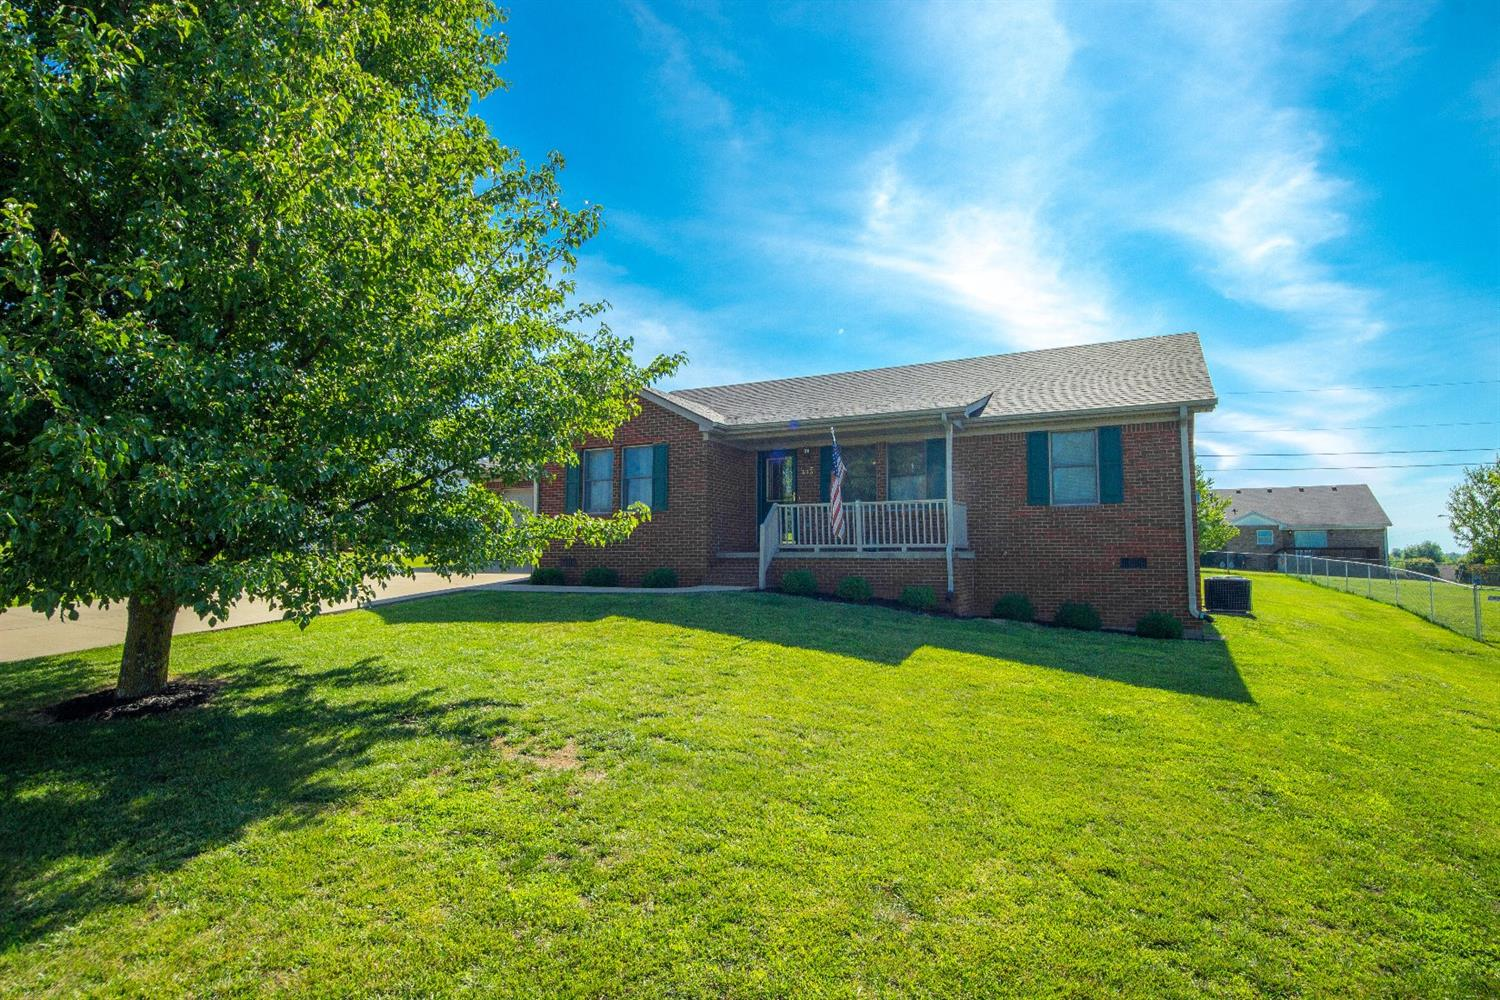 Home For Sale at 406 Pope Ave, Harrodsburg, KY 40330